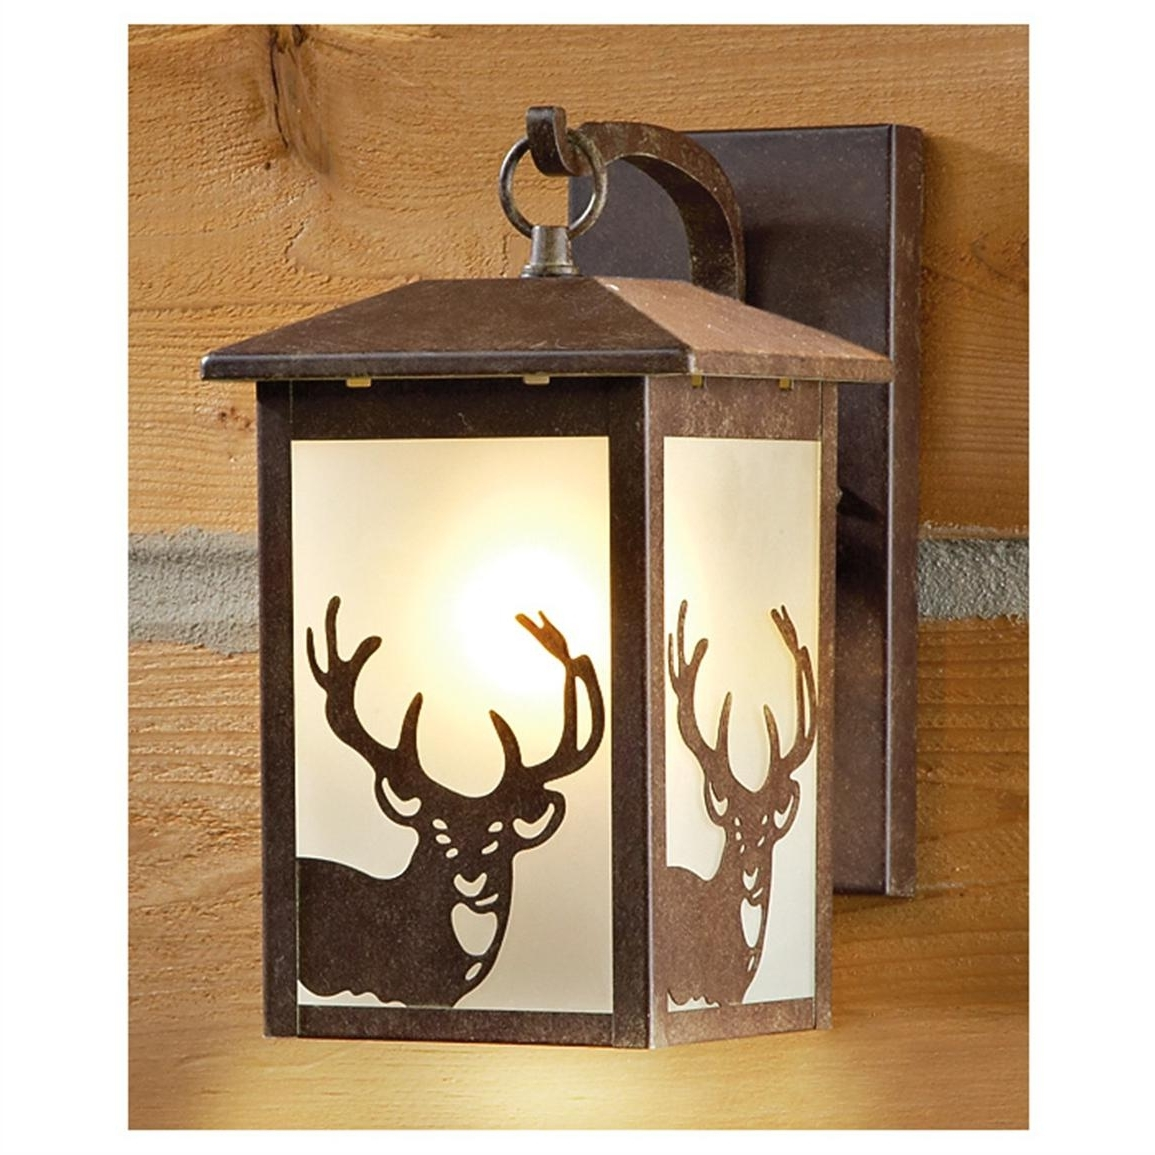 Favorite Outdoor Lanterns For Tables With Regard To Rustic Outdoor Hanging Lamps Table Landscape Lighting Wall Mounted (View 4 of 20)